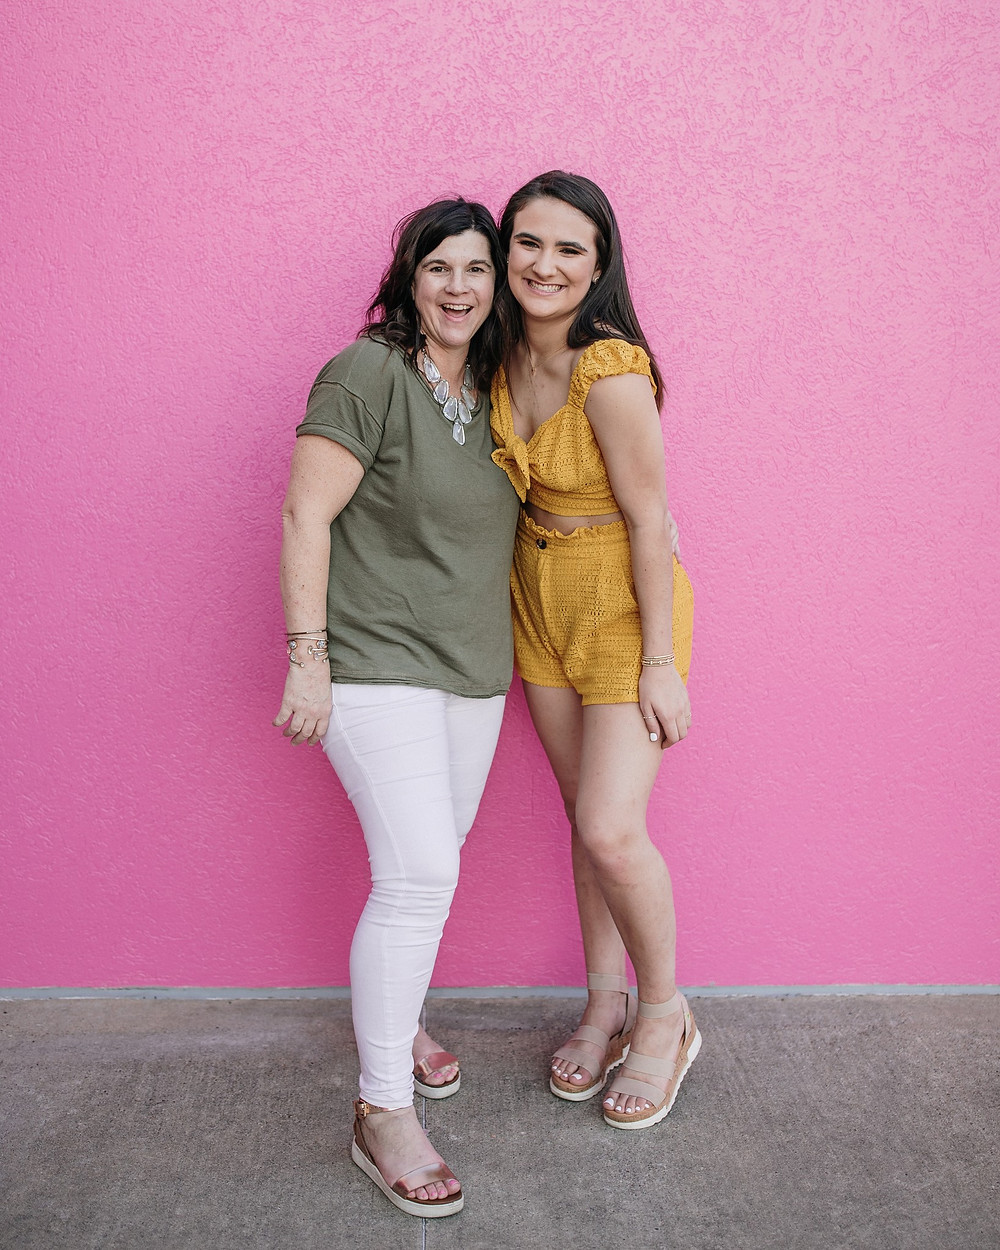 Mom and daughter in front of bright pink wall